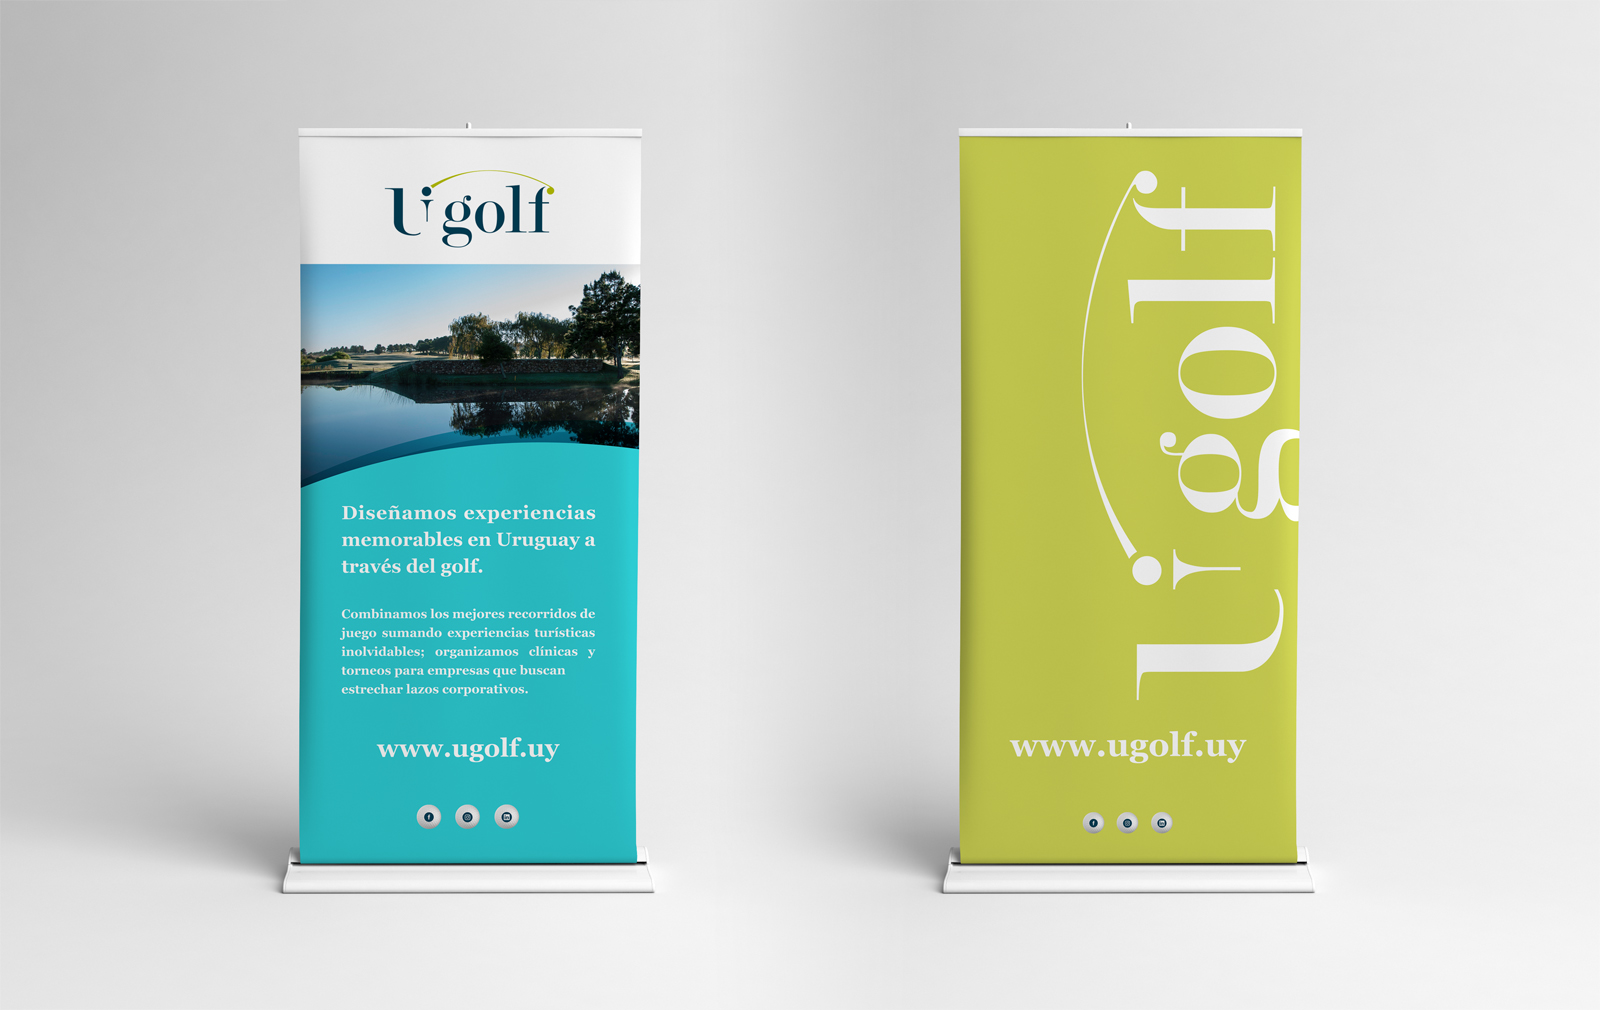 Cliente: UGolf. Identidad visual